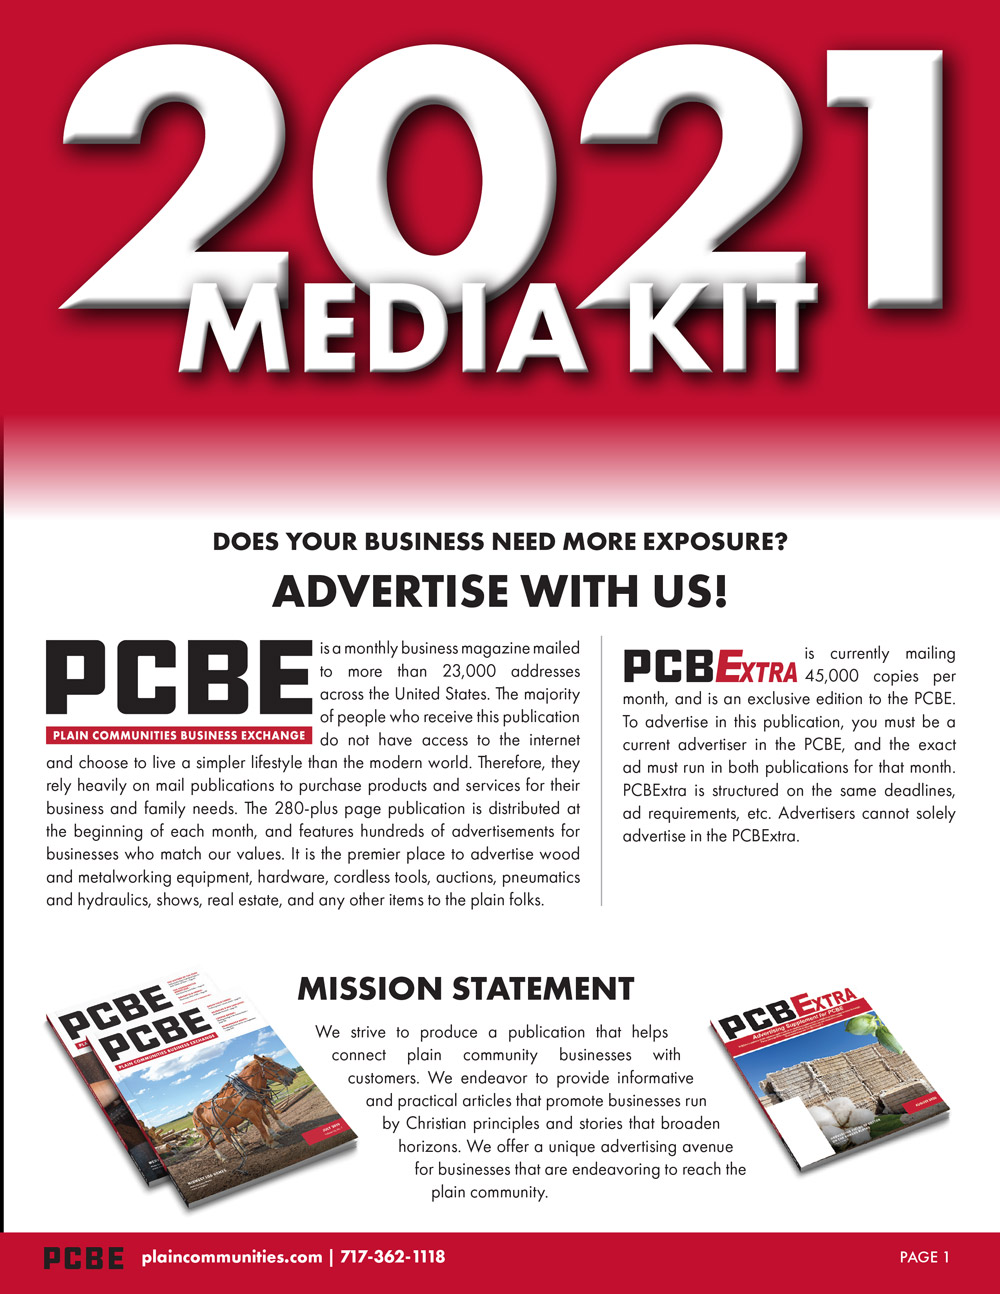 Media Kit sample